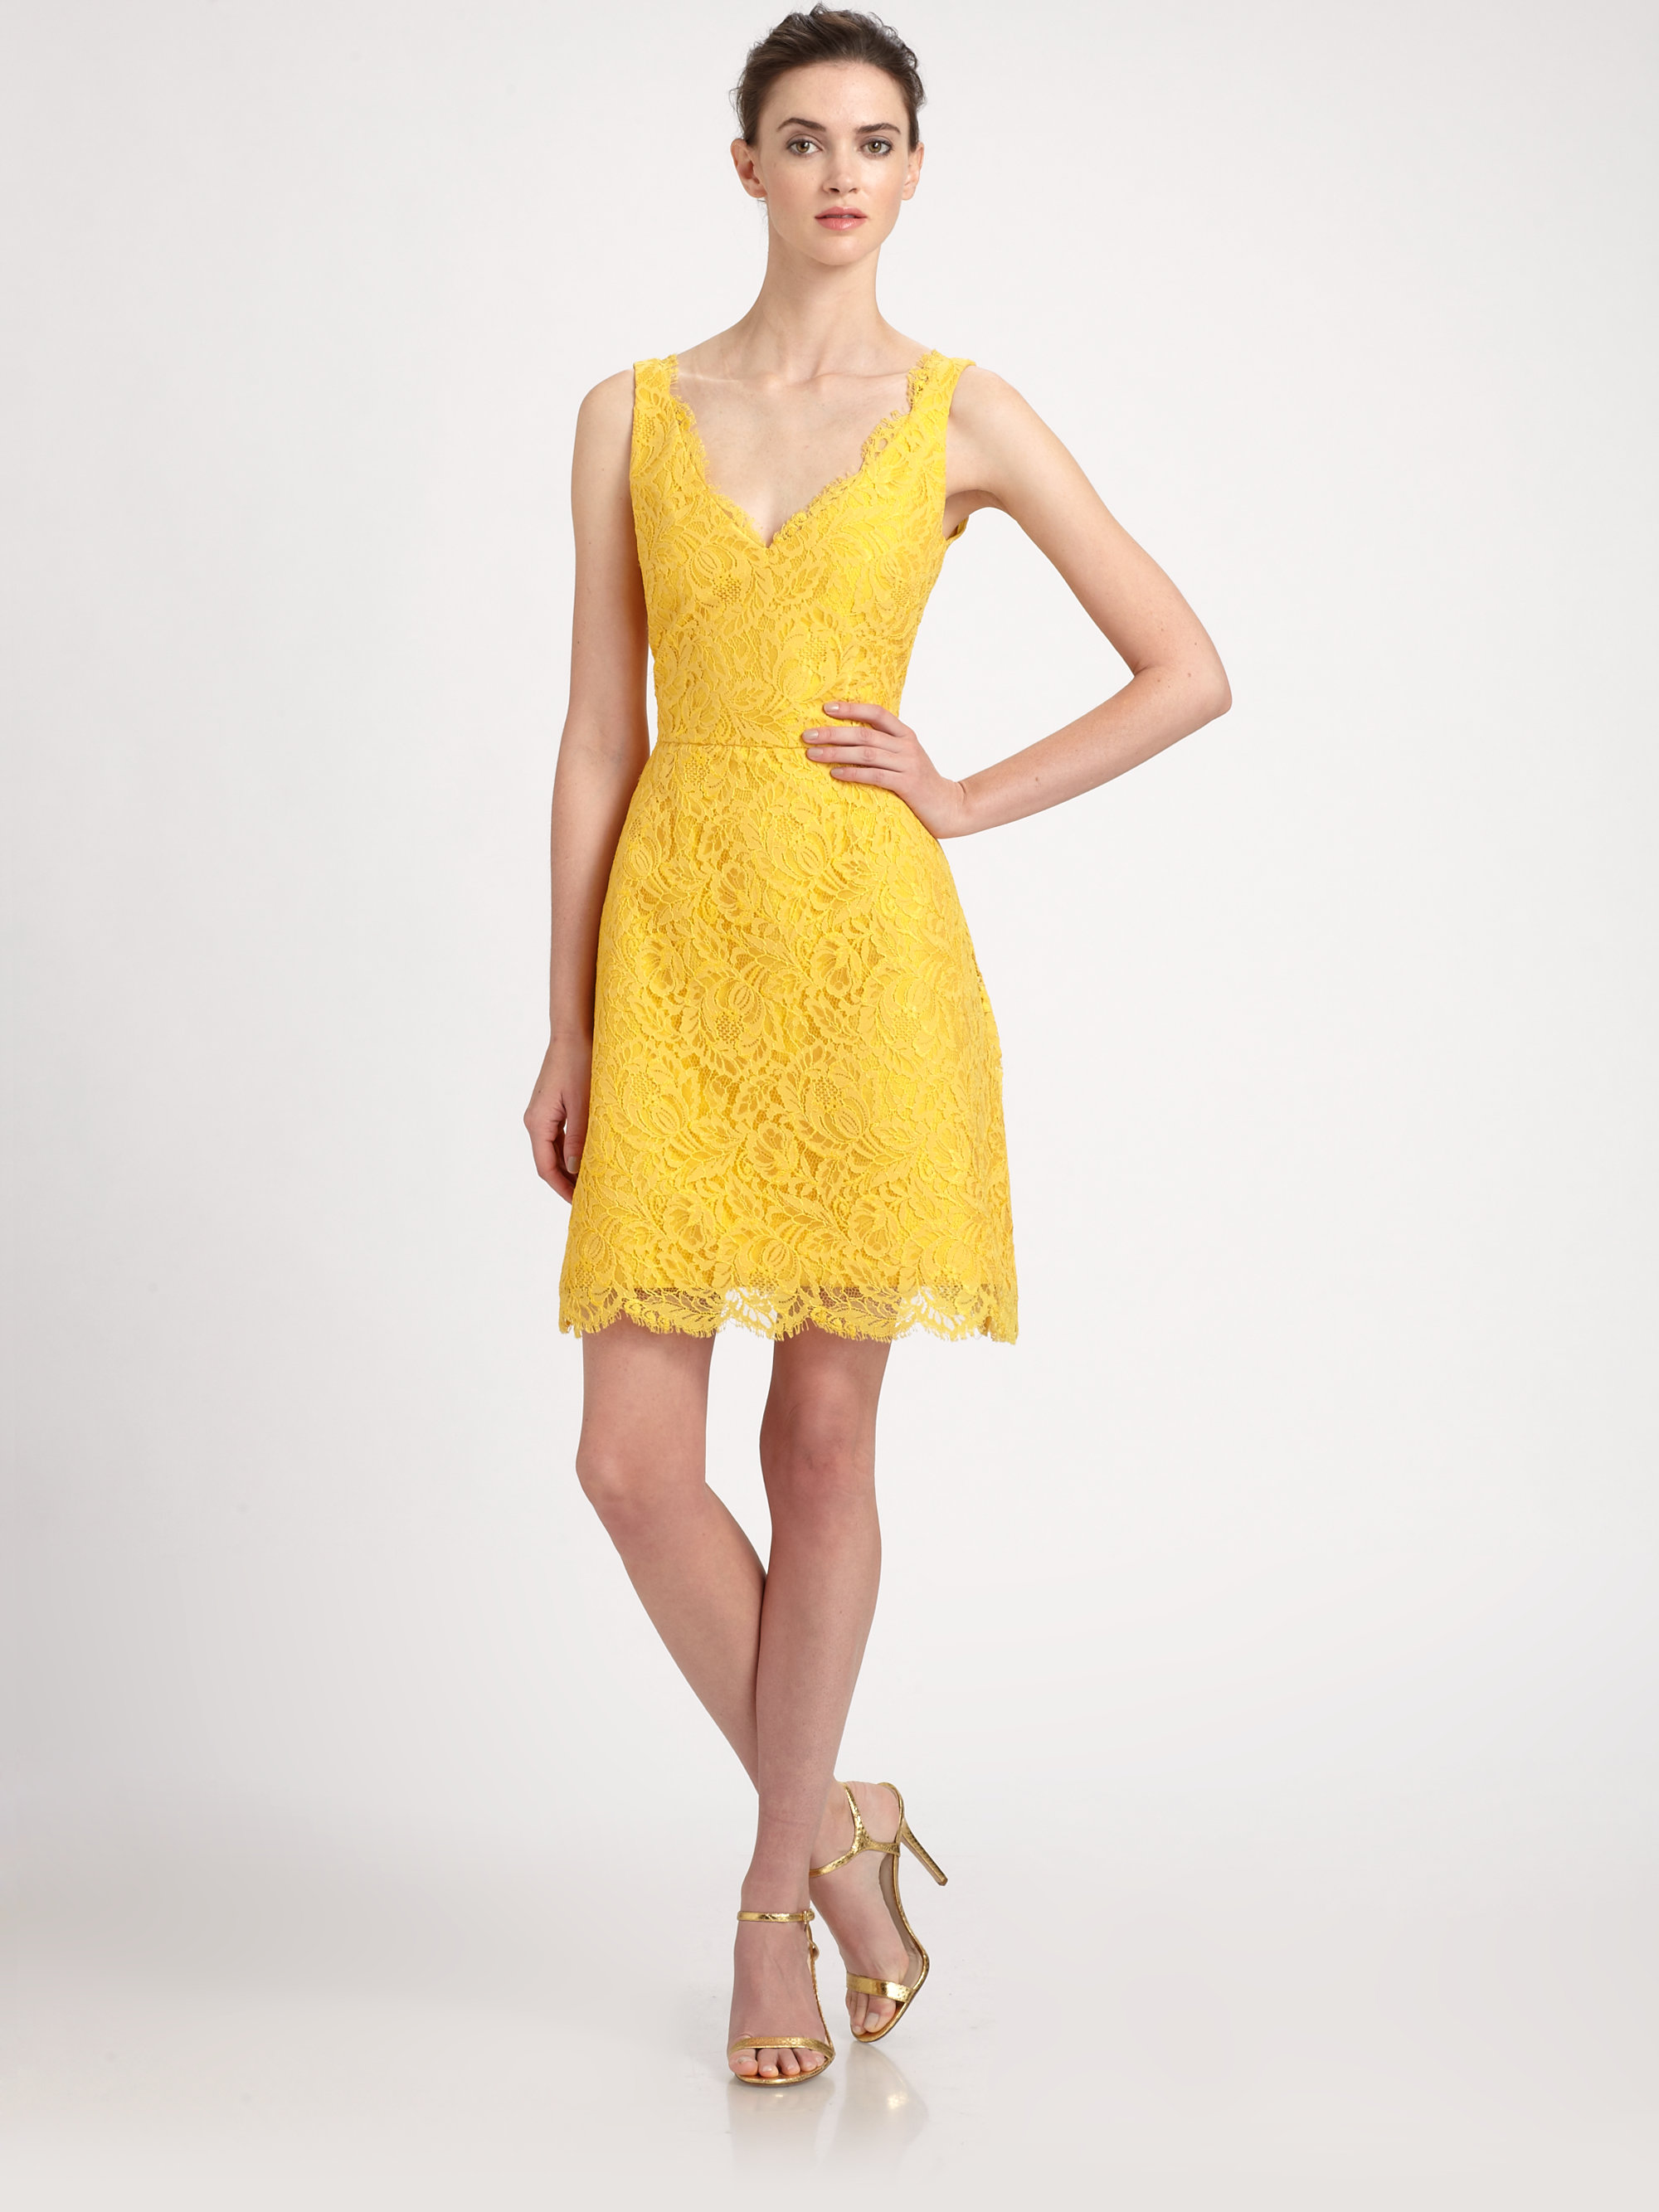 Lyst - Ml monique lhuillier Lace Dress in Yellow